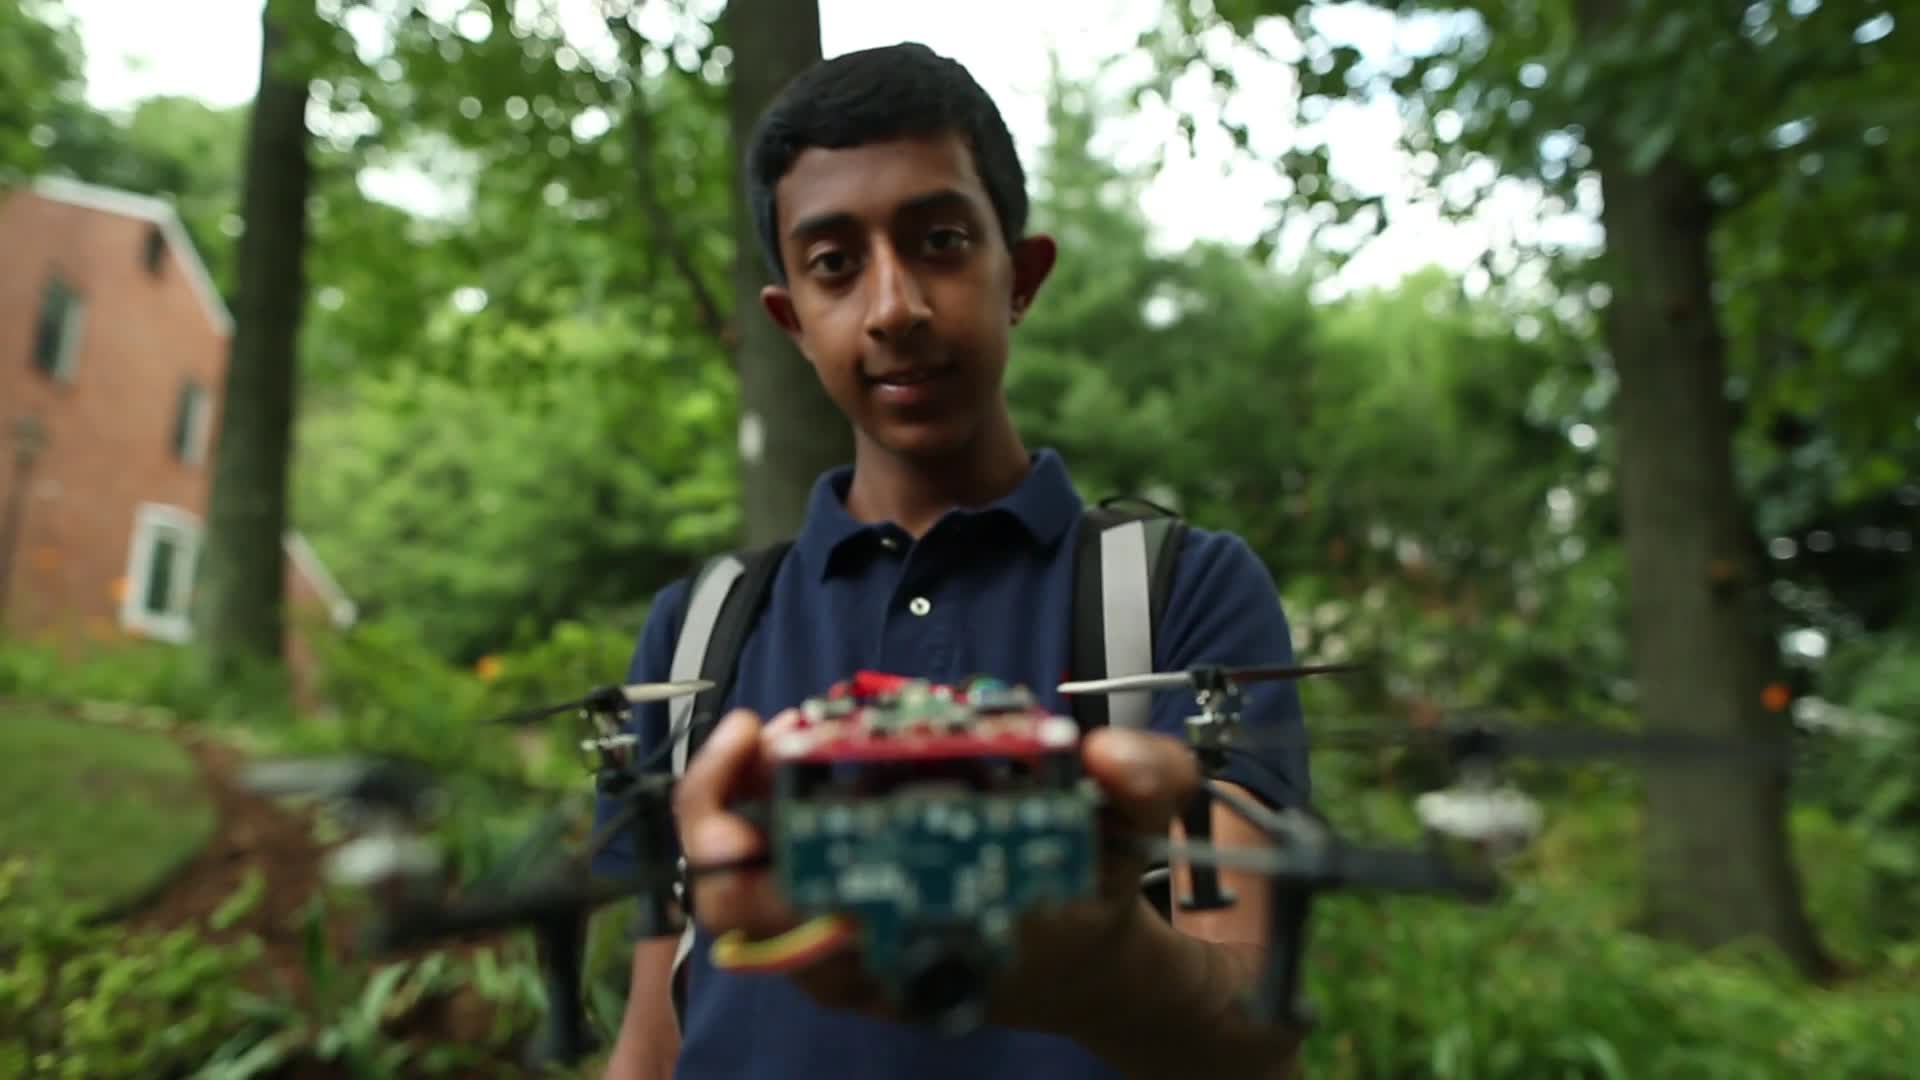 The 15-Year-Old Who Builds Drones